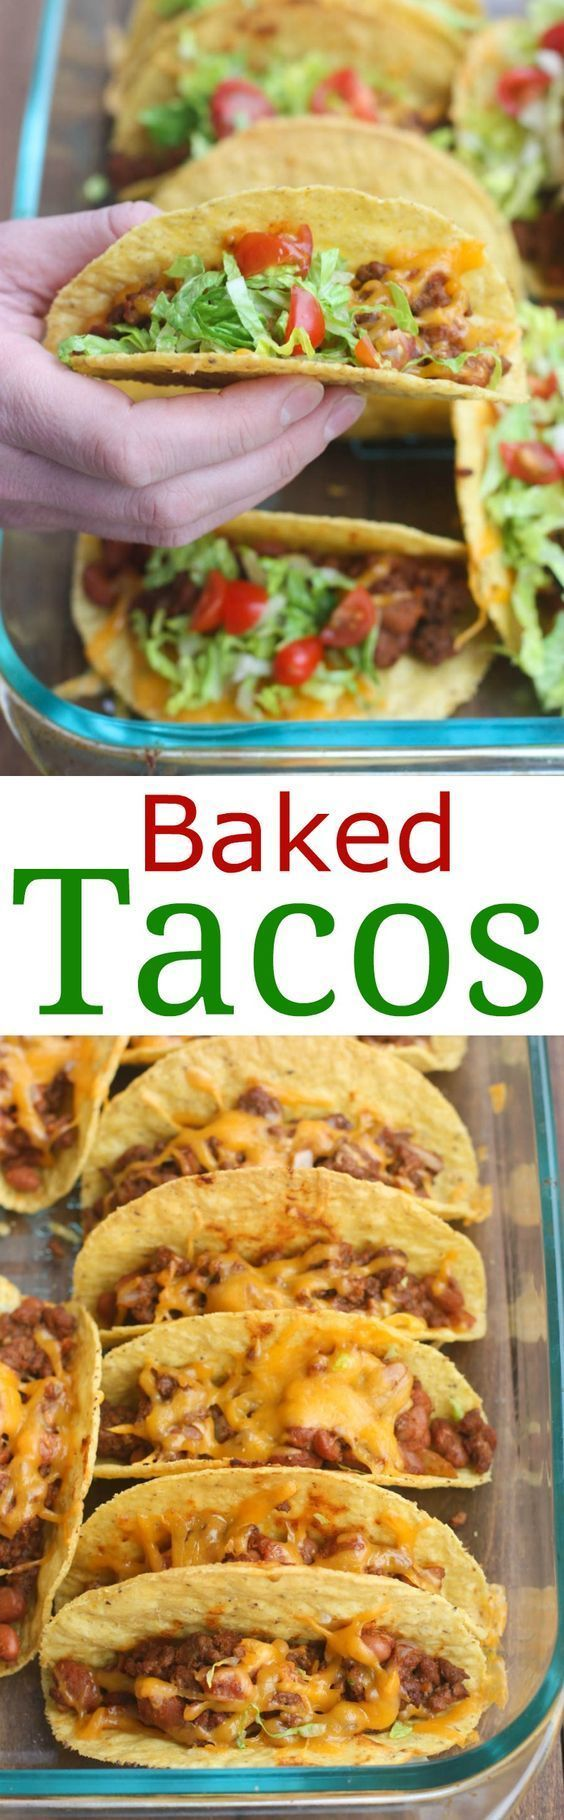 Oven Baked Tacos are soo easy and always a family favorite! Cheesy, crispy baked tacos with the best homemade taco filling (no packet seasoning!). | Tastes Better From Scratch